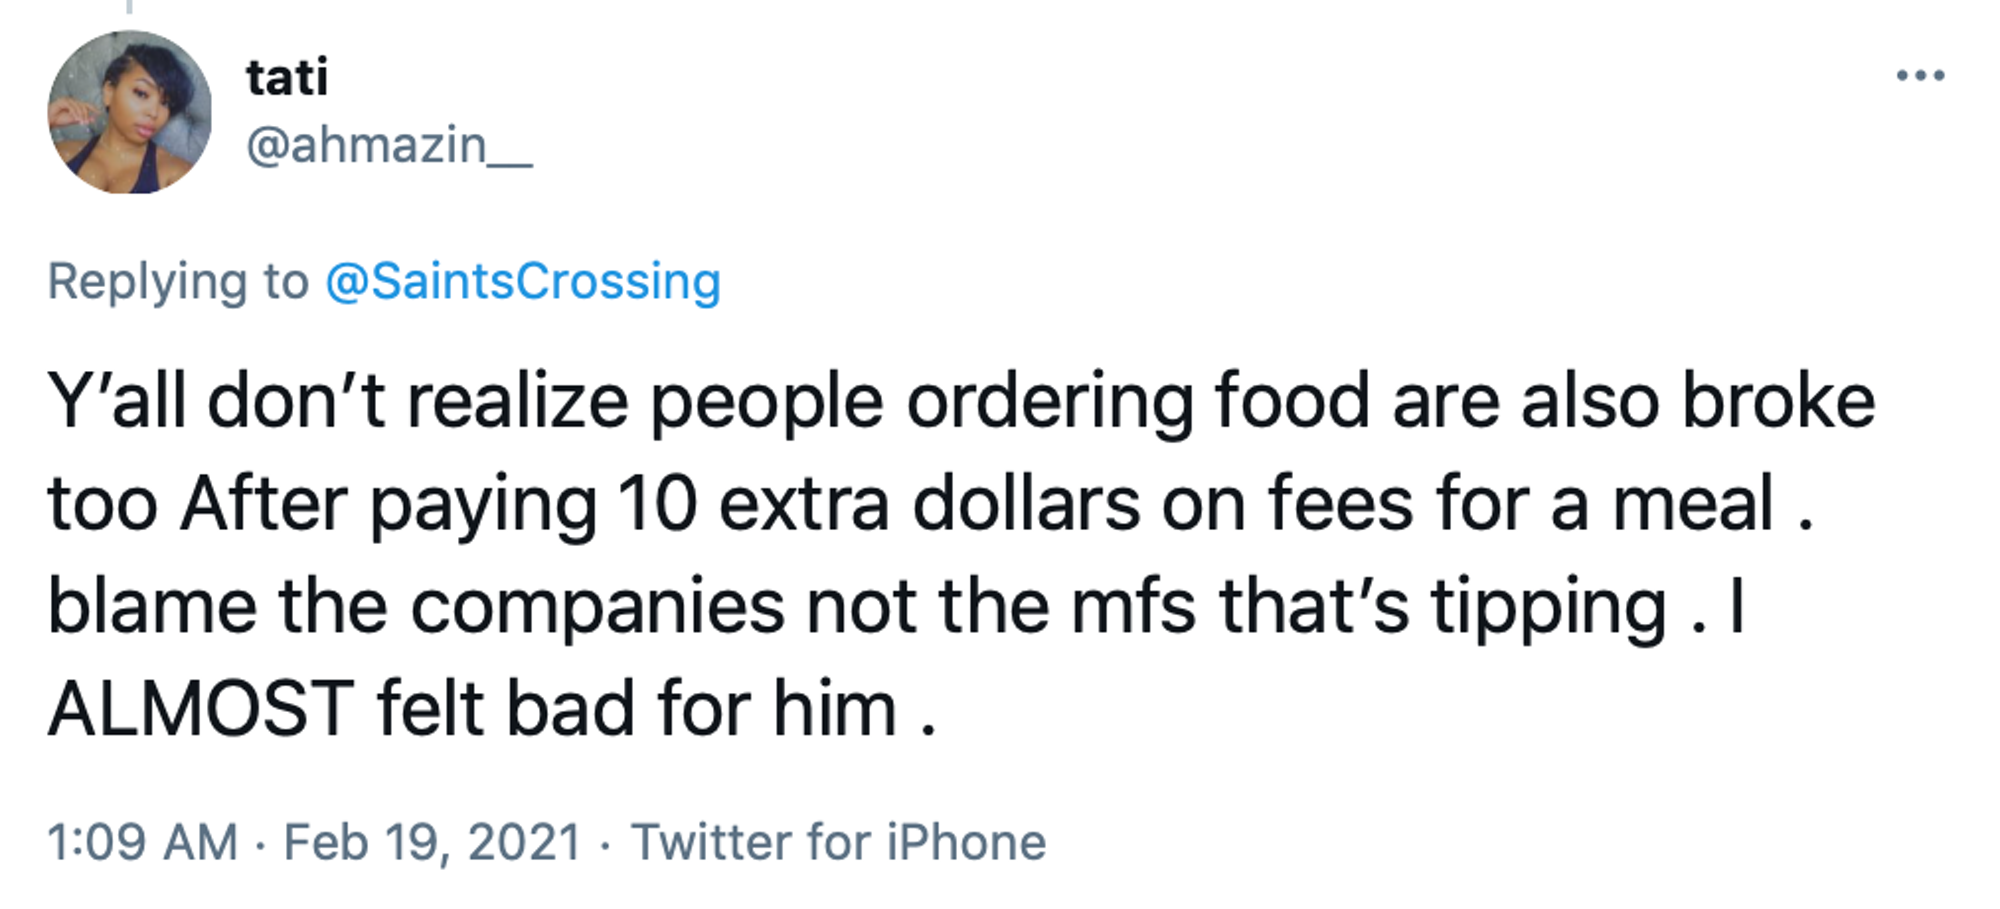 Y'all don't realize people ordering food are also broke too After paying 10 extra dollars on fees for a meal . blame the companies not the mfs that's tipping . I ALMOST felt bad for him .